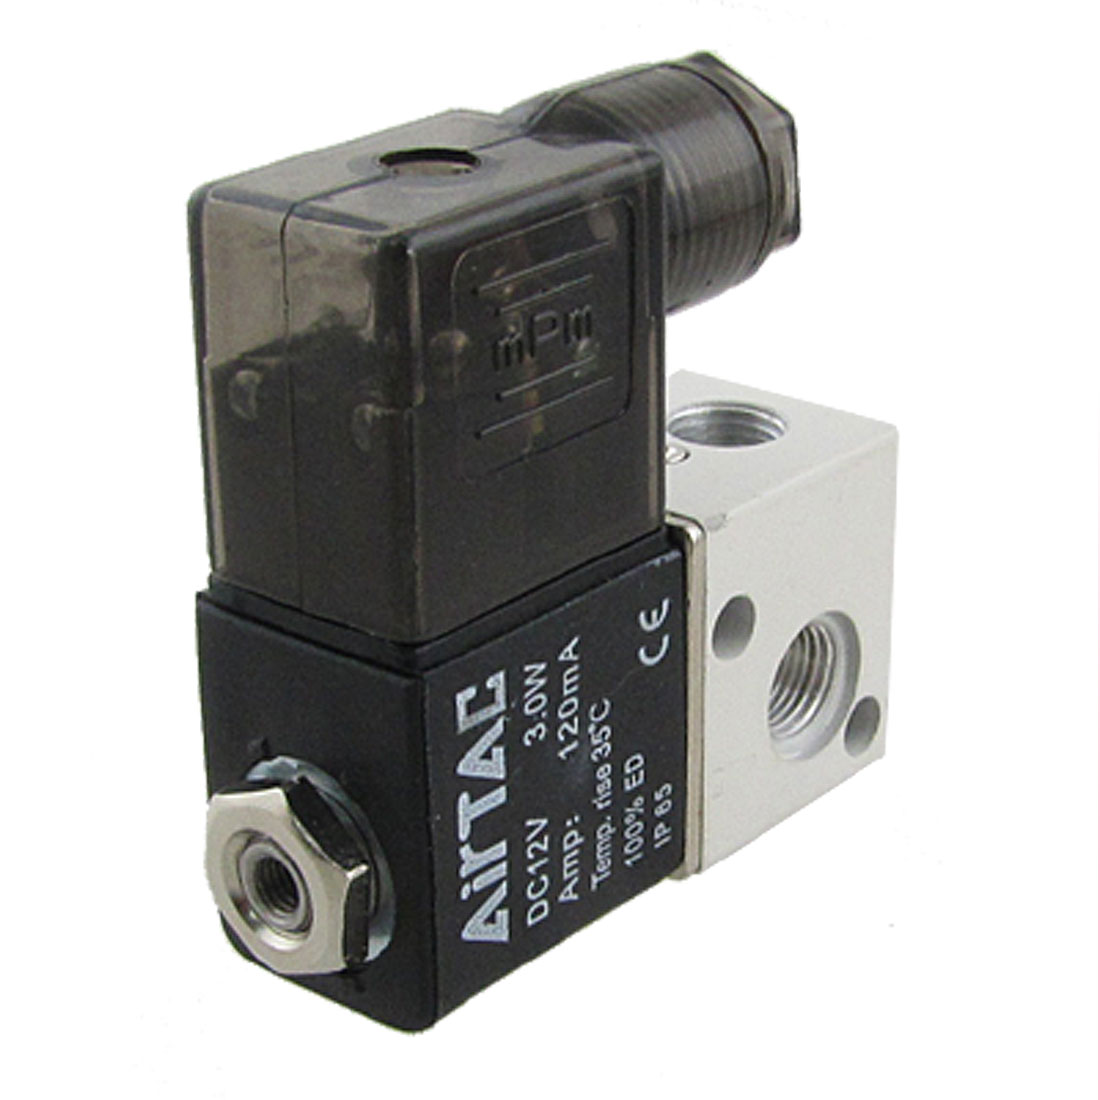 3V1-06 2 Position 3 Way 120mA Pneumatic Solenoid Valve Black